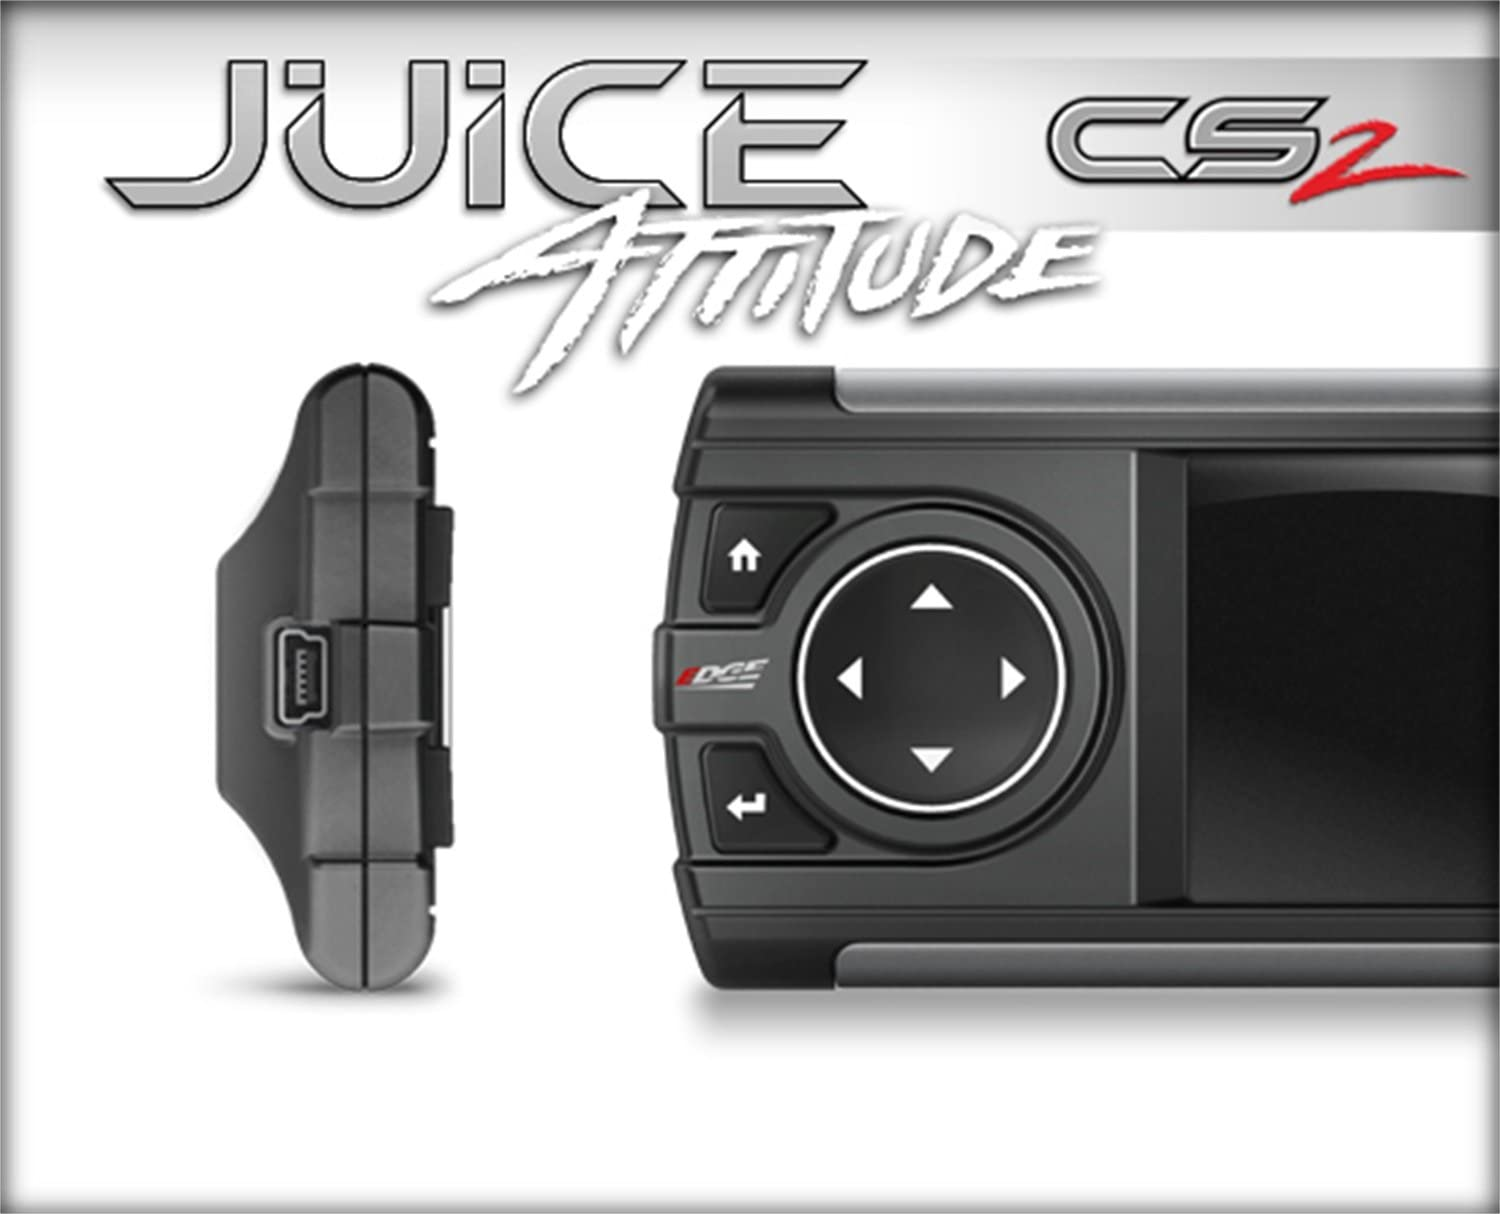 Edge Products 31503 Juice with Attitude Engine Computer